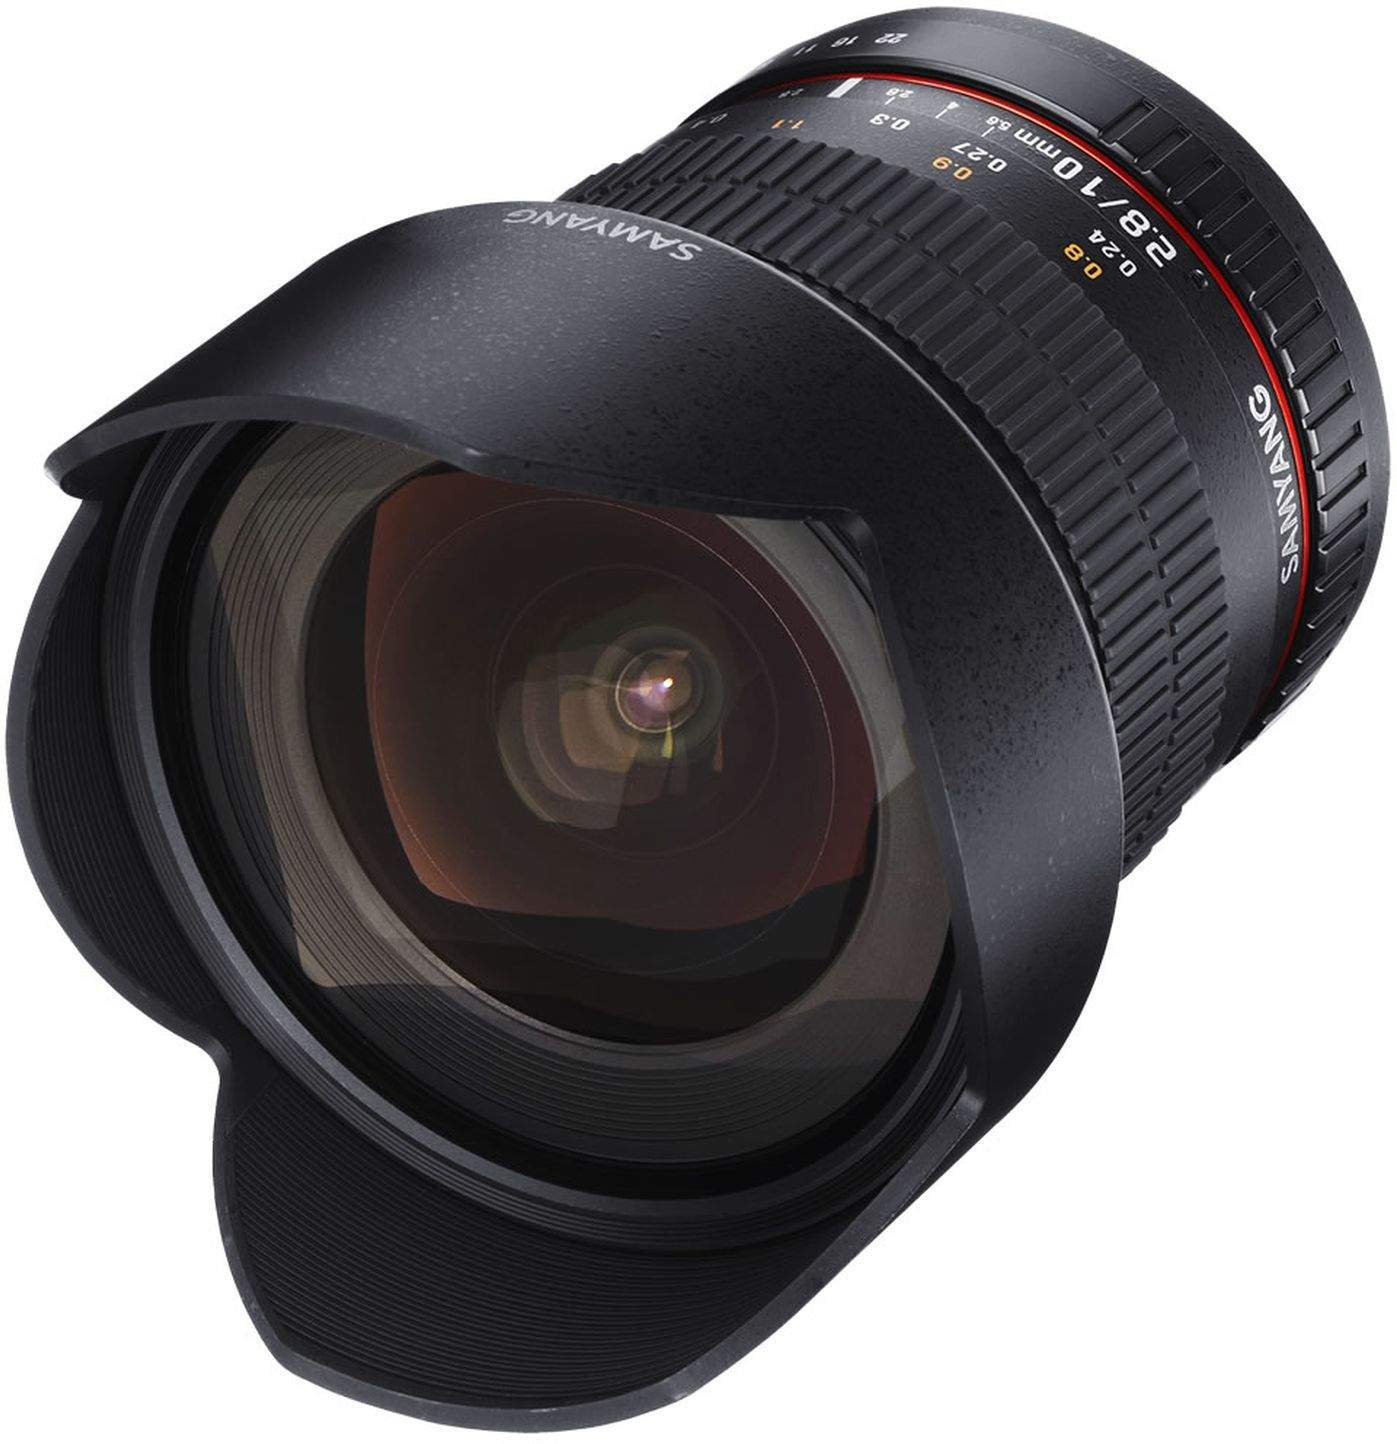 Samyang 10mm F2.8 UMC II APS-C Sony E Camera Lens main image